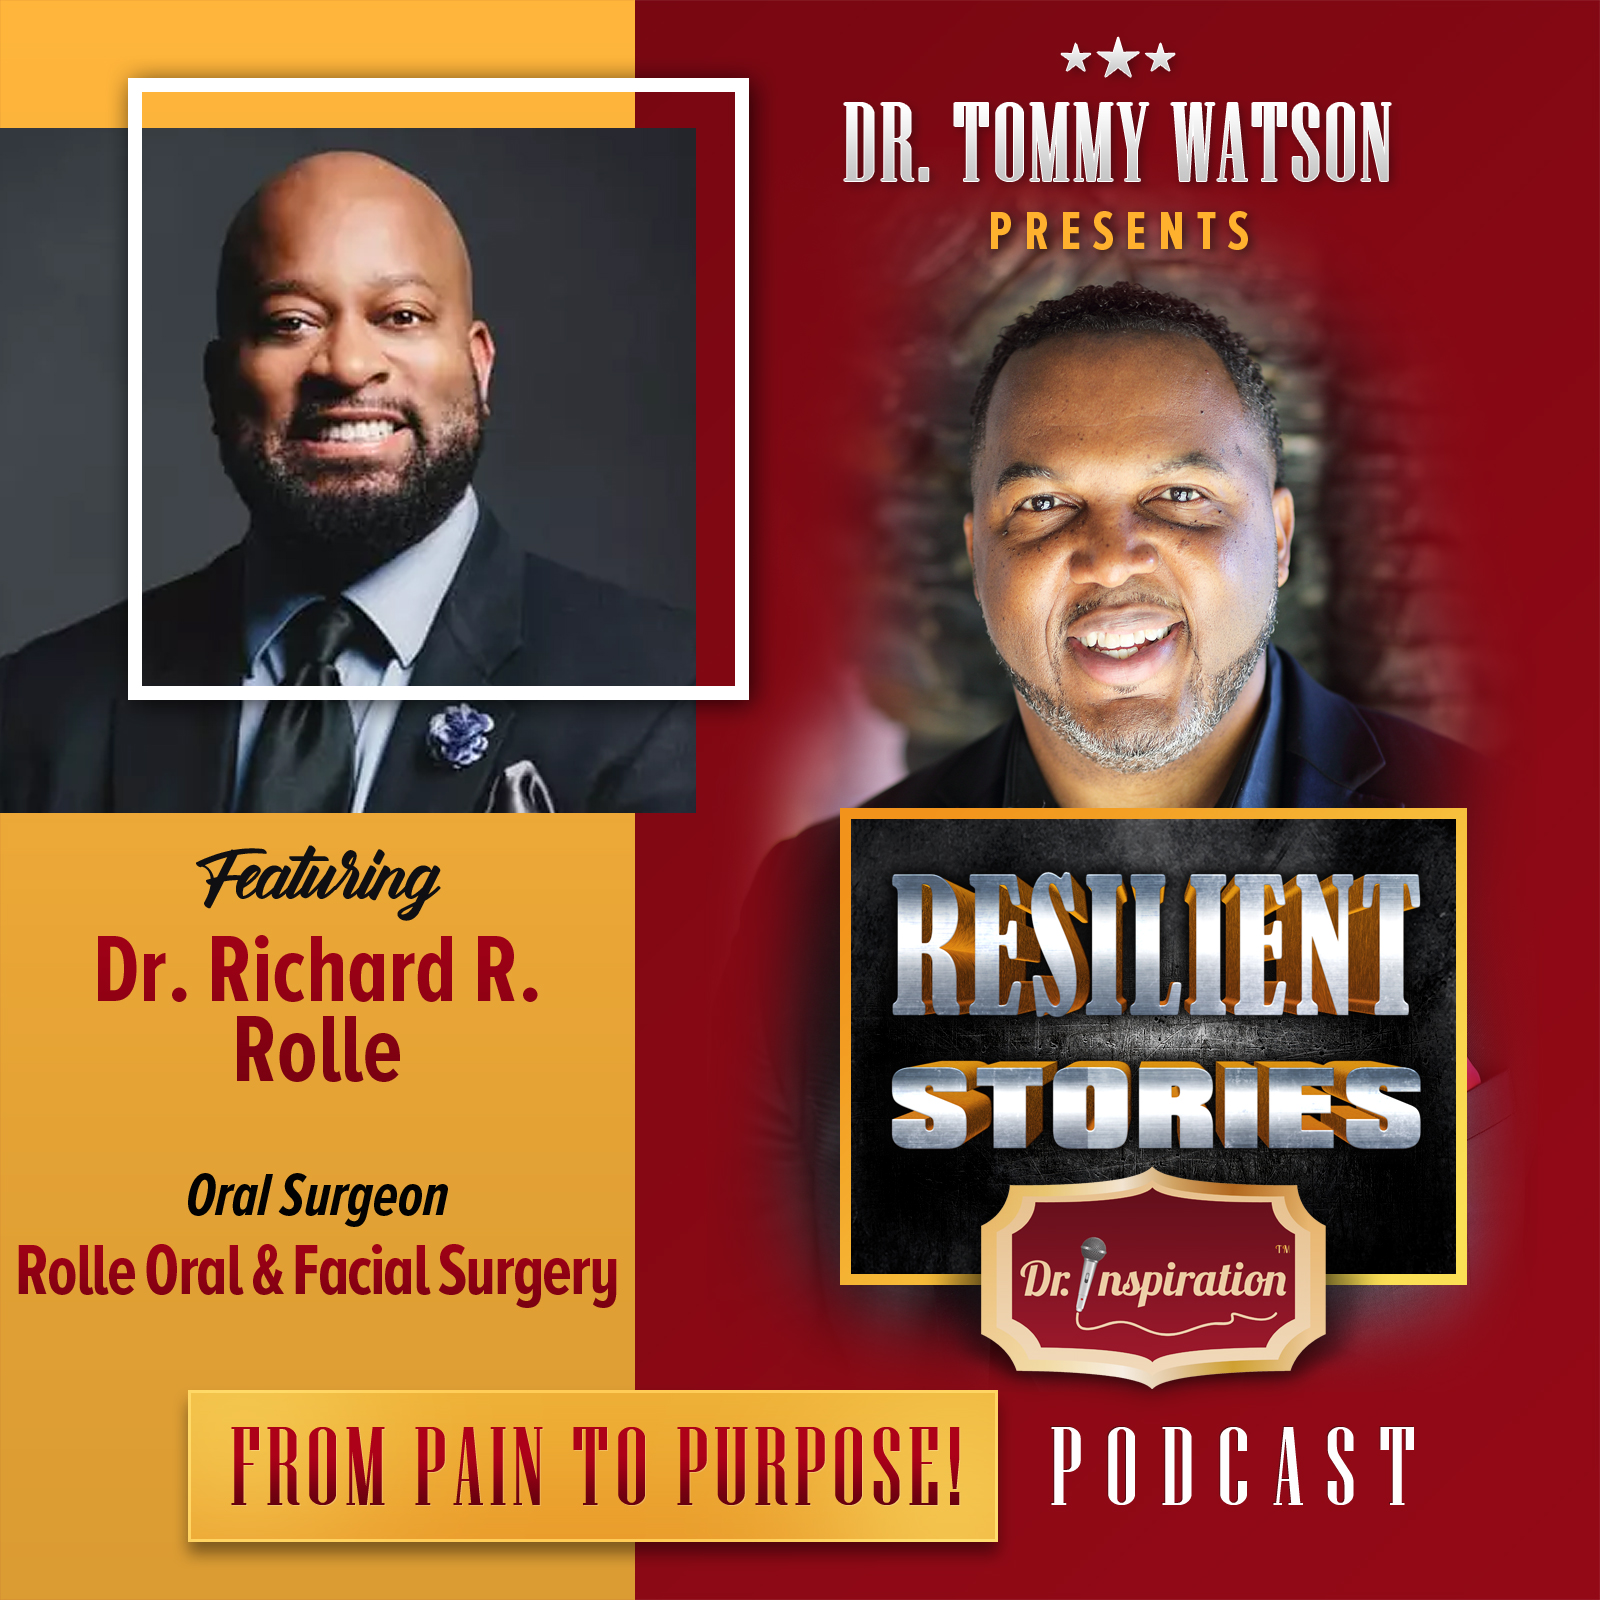 Dr. Tommy Watson